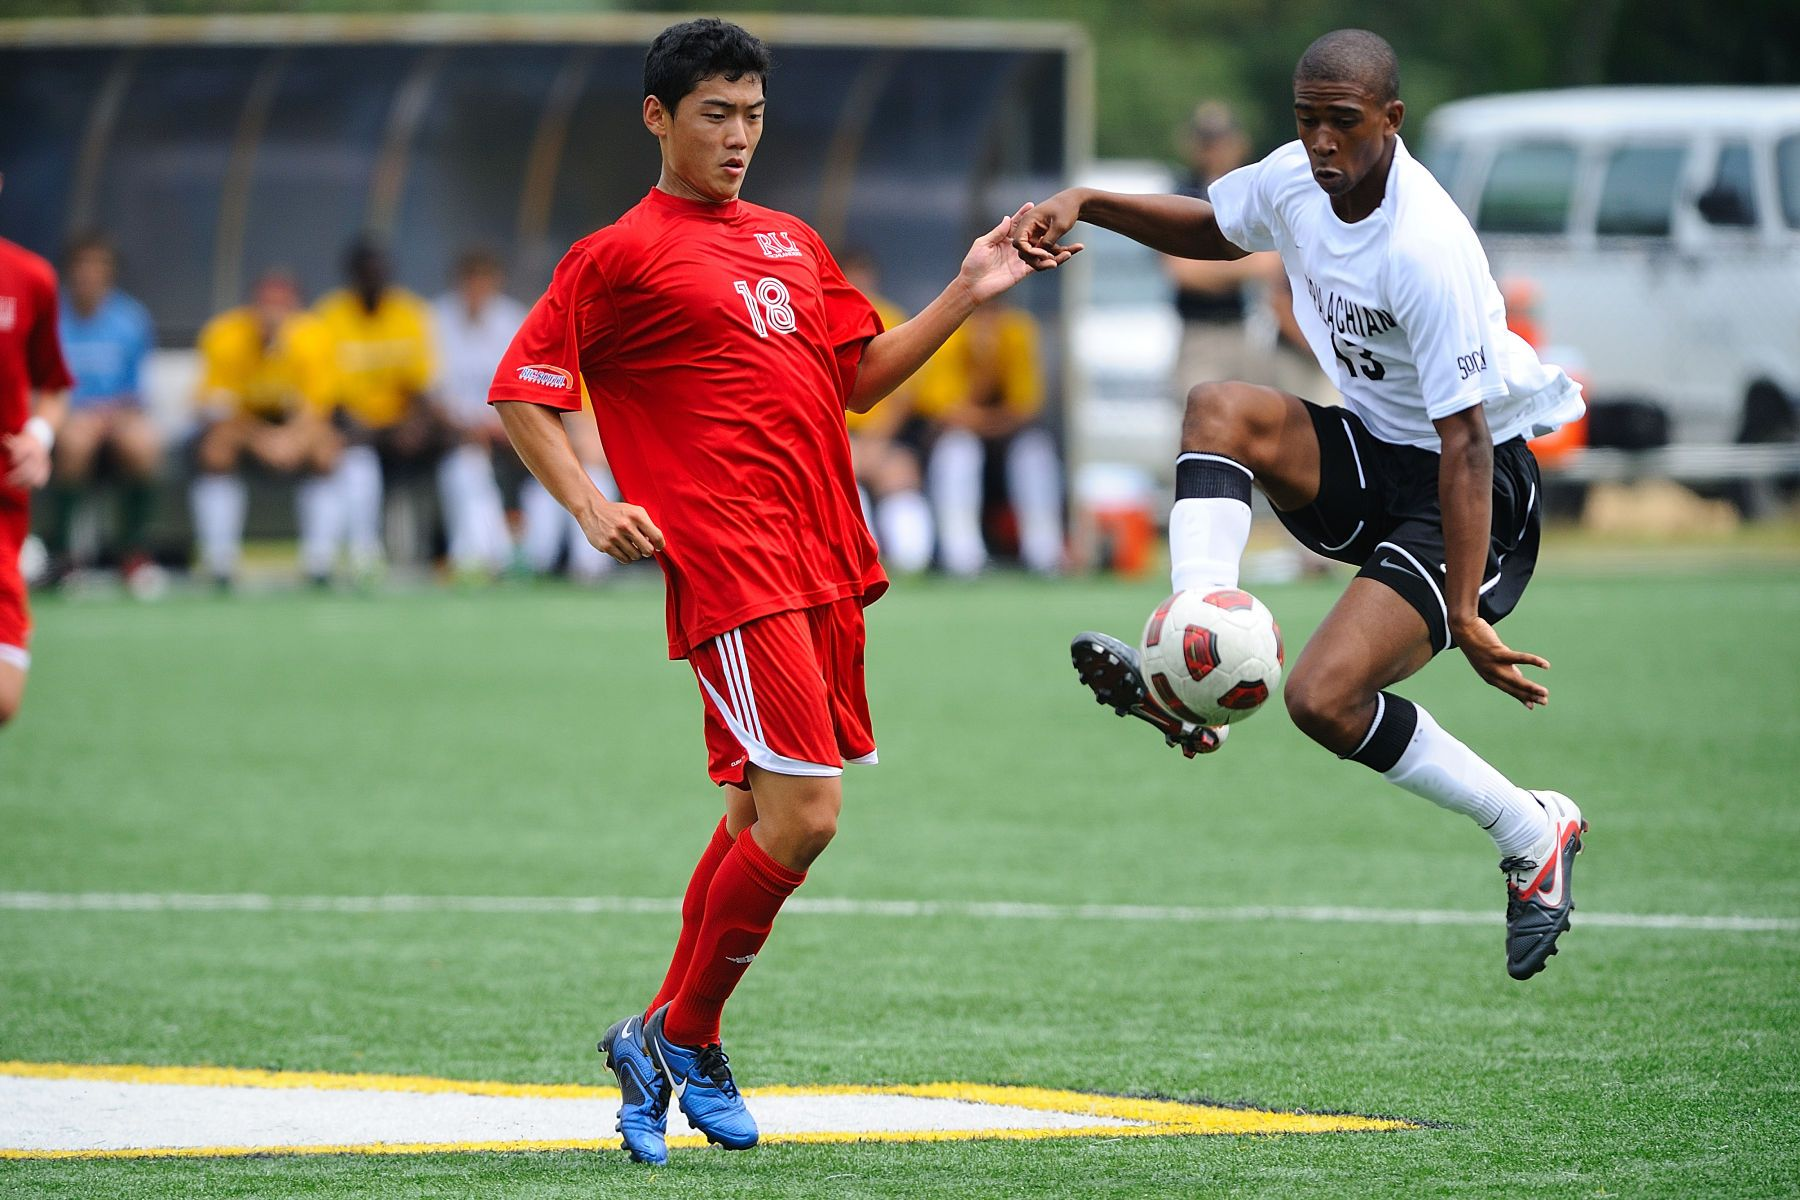 NCAA SOCCER:  AUG 27 Radford at Appalachian State